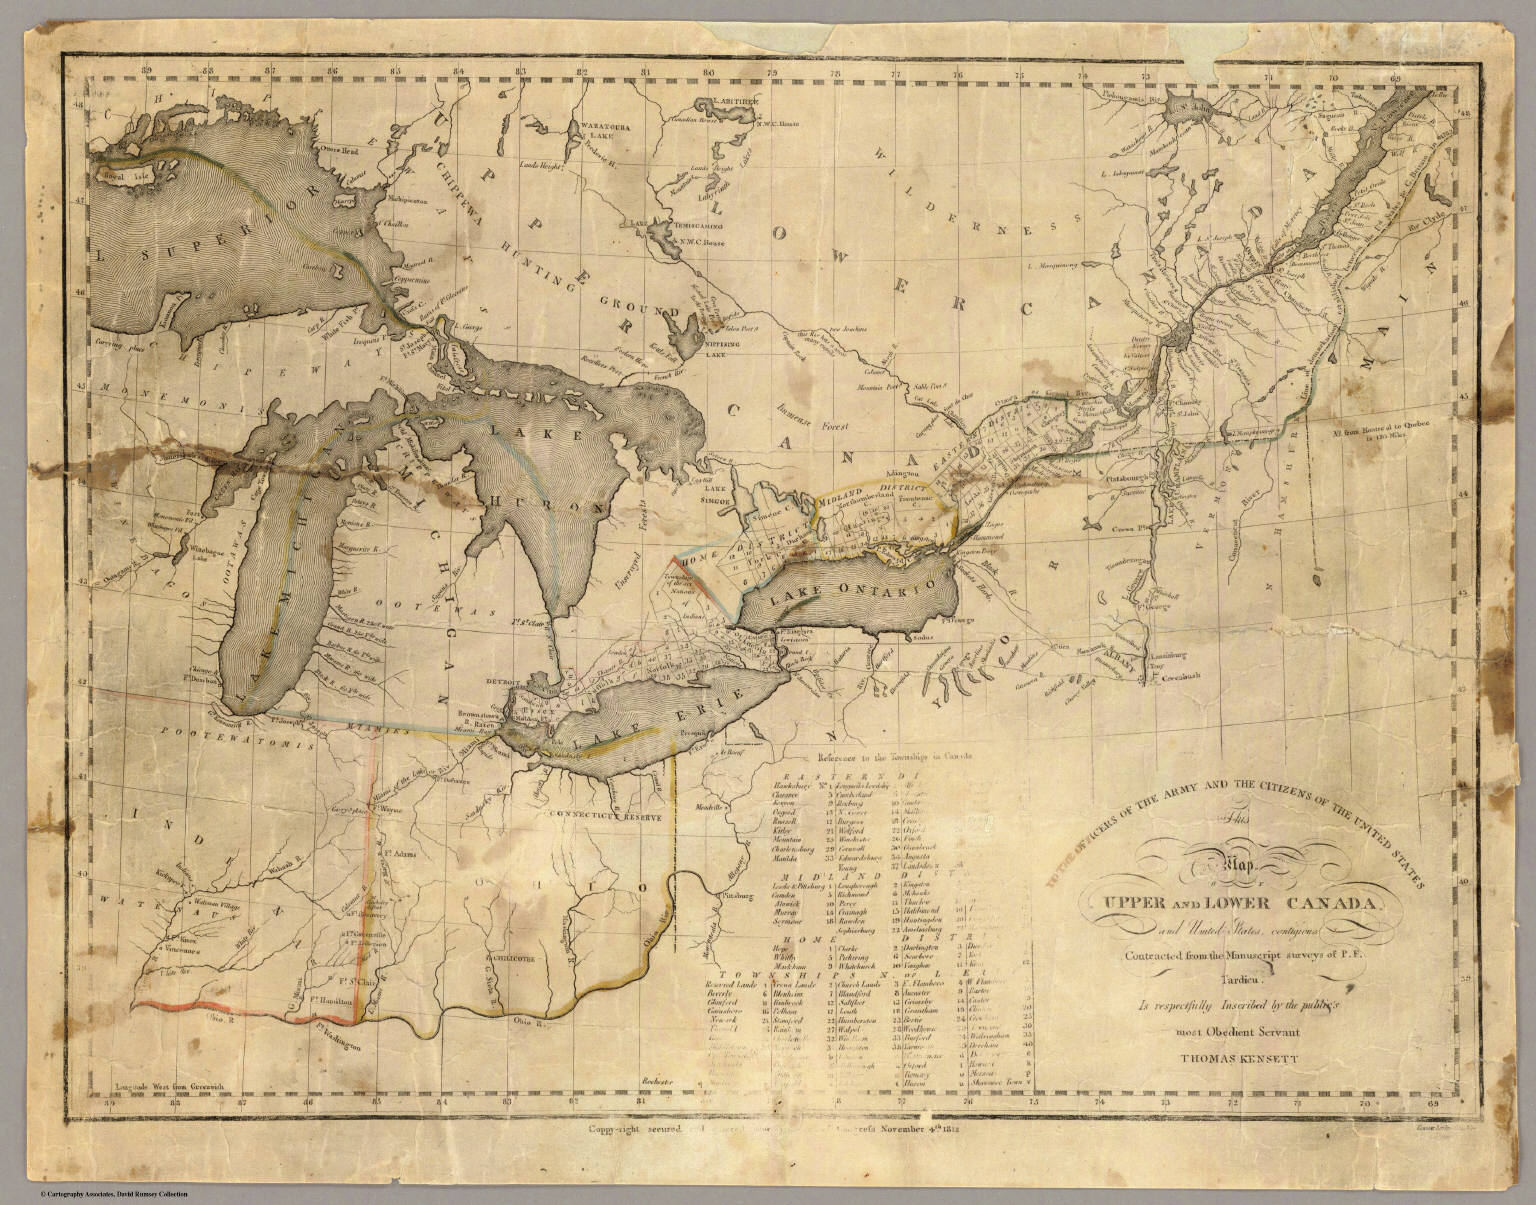 Upper Lower Canada Map This map of Upper and Lower Canada and United States.   David